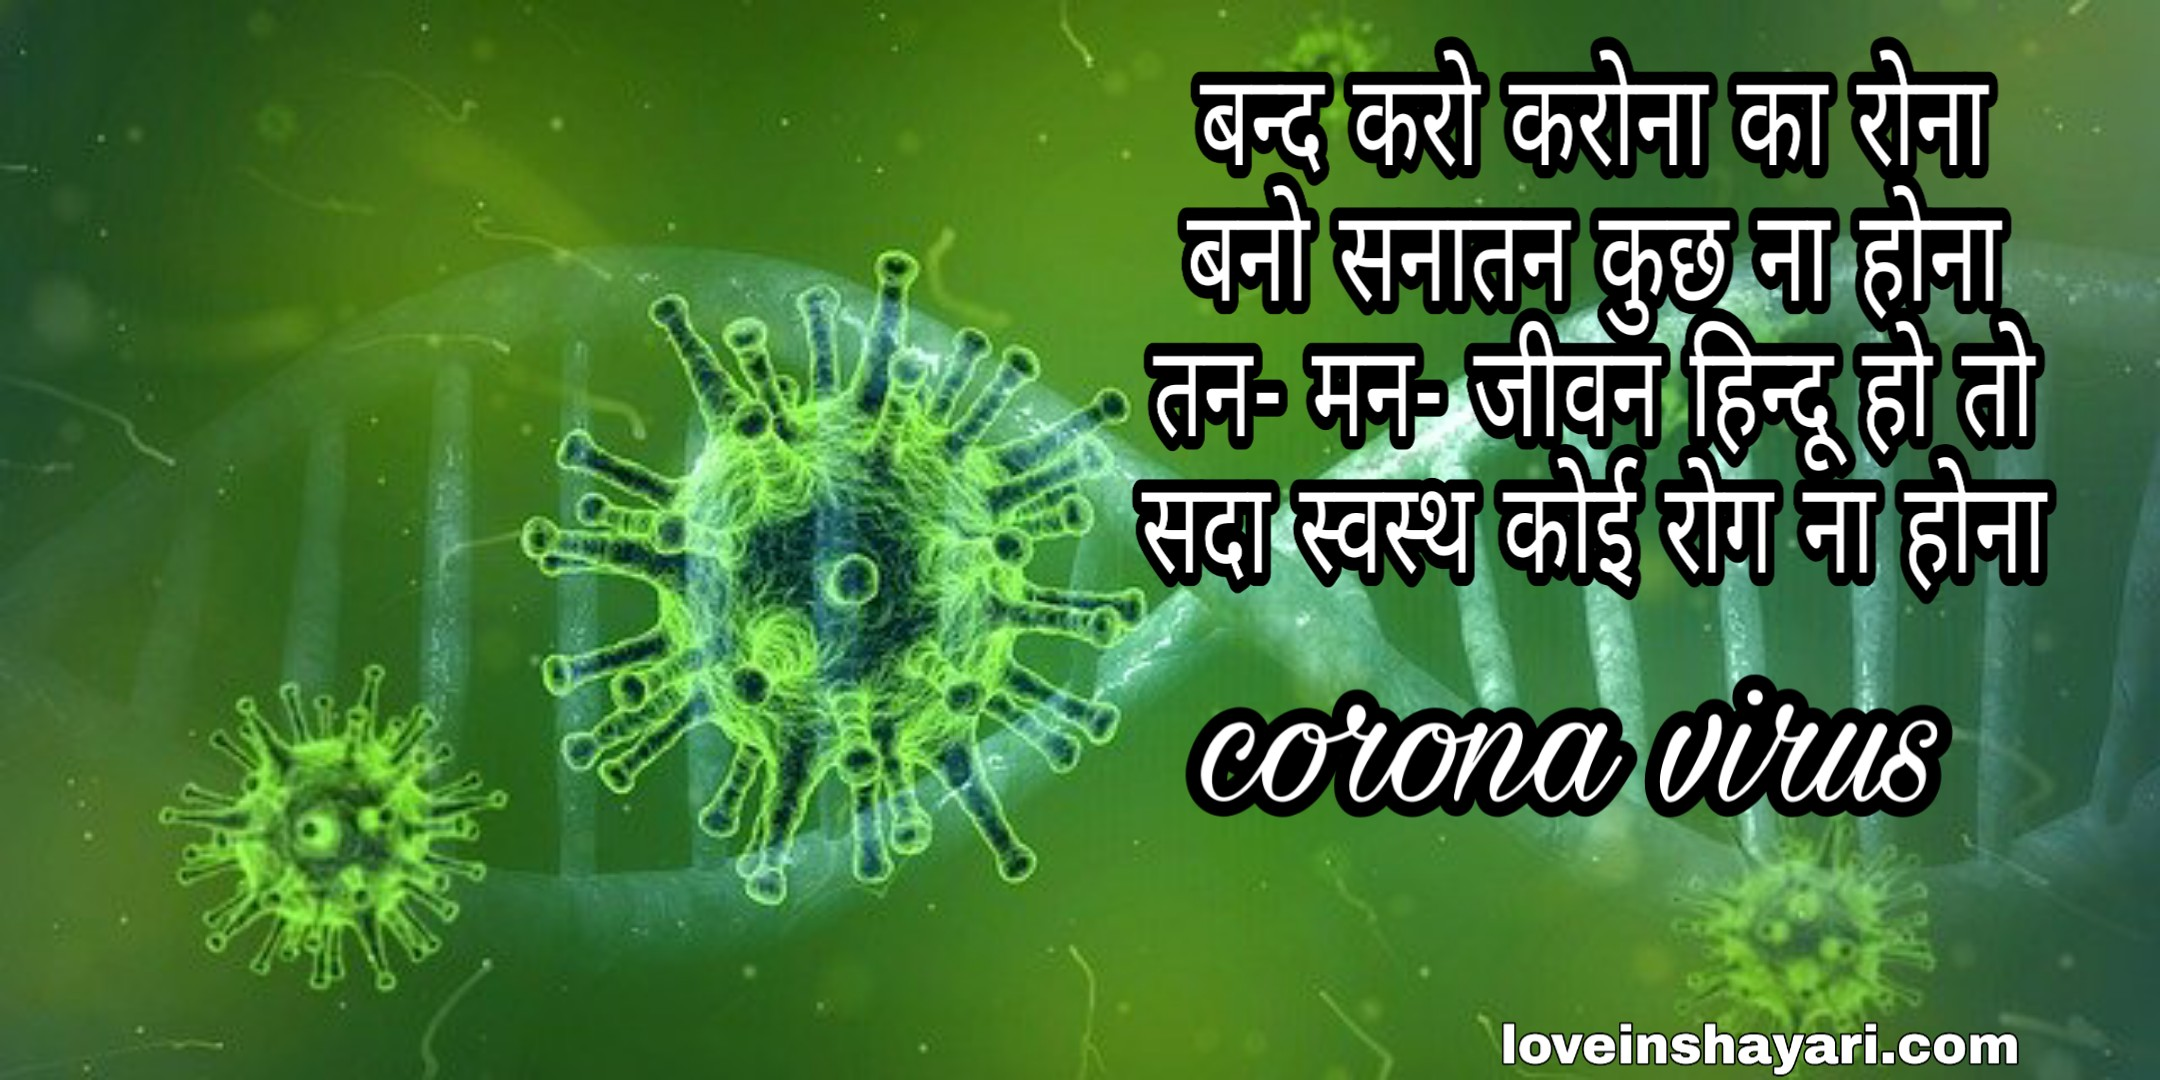 Photo of corona virus status whatsapp status for 5 april 2020